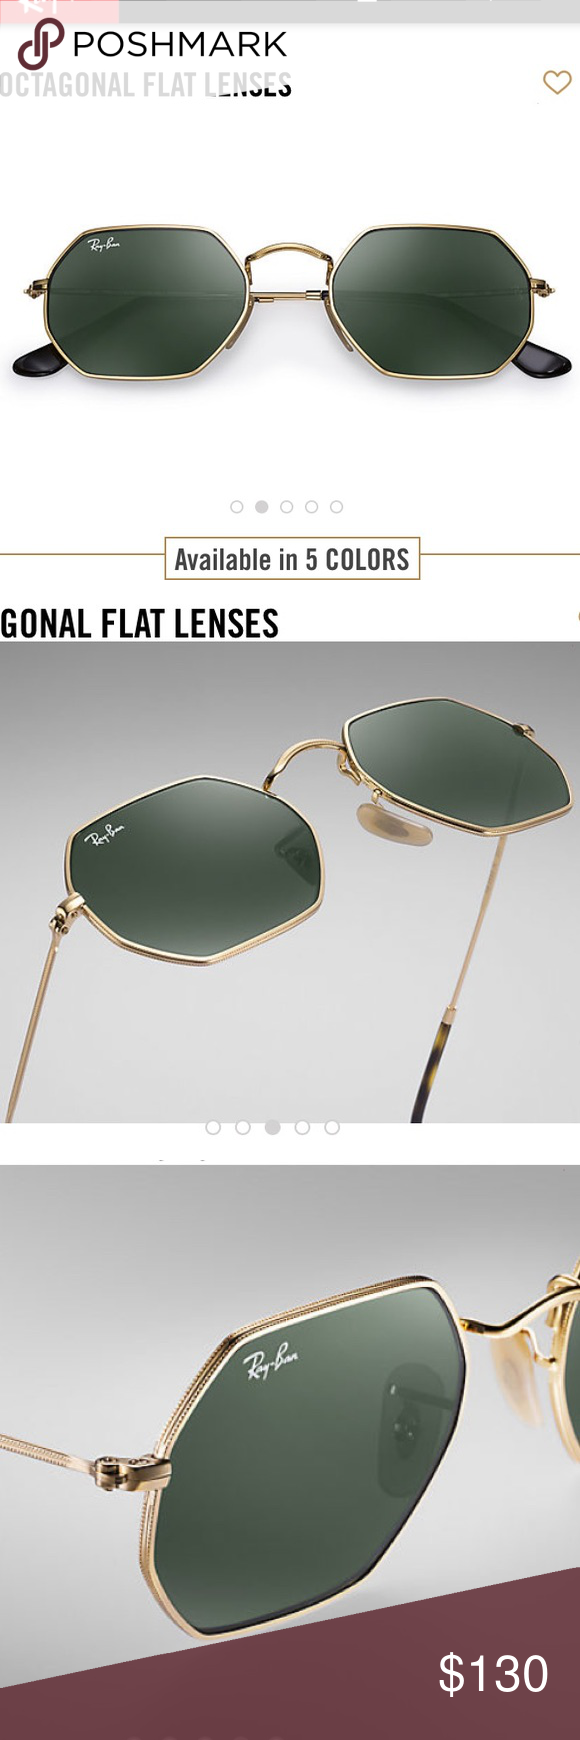 330637ec4476bf Ray-ban   octagonal flat lens sunglasses PRODUCT DETAILS Model code   RB3556N 001 53